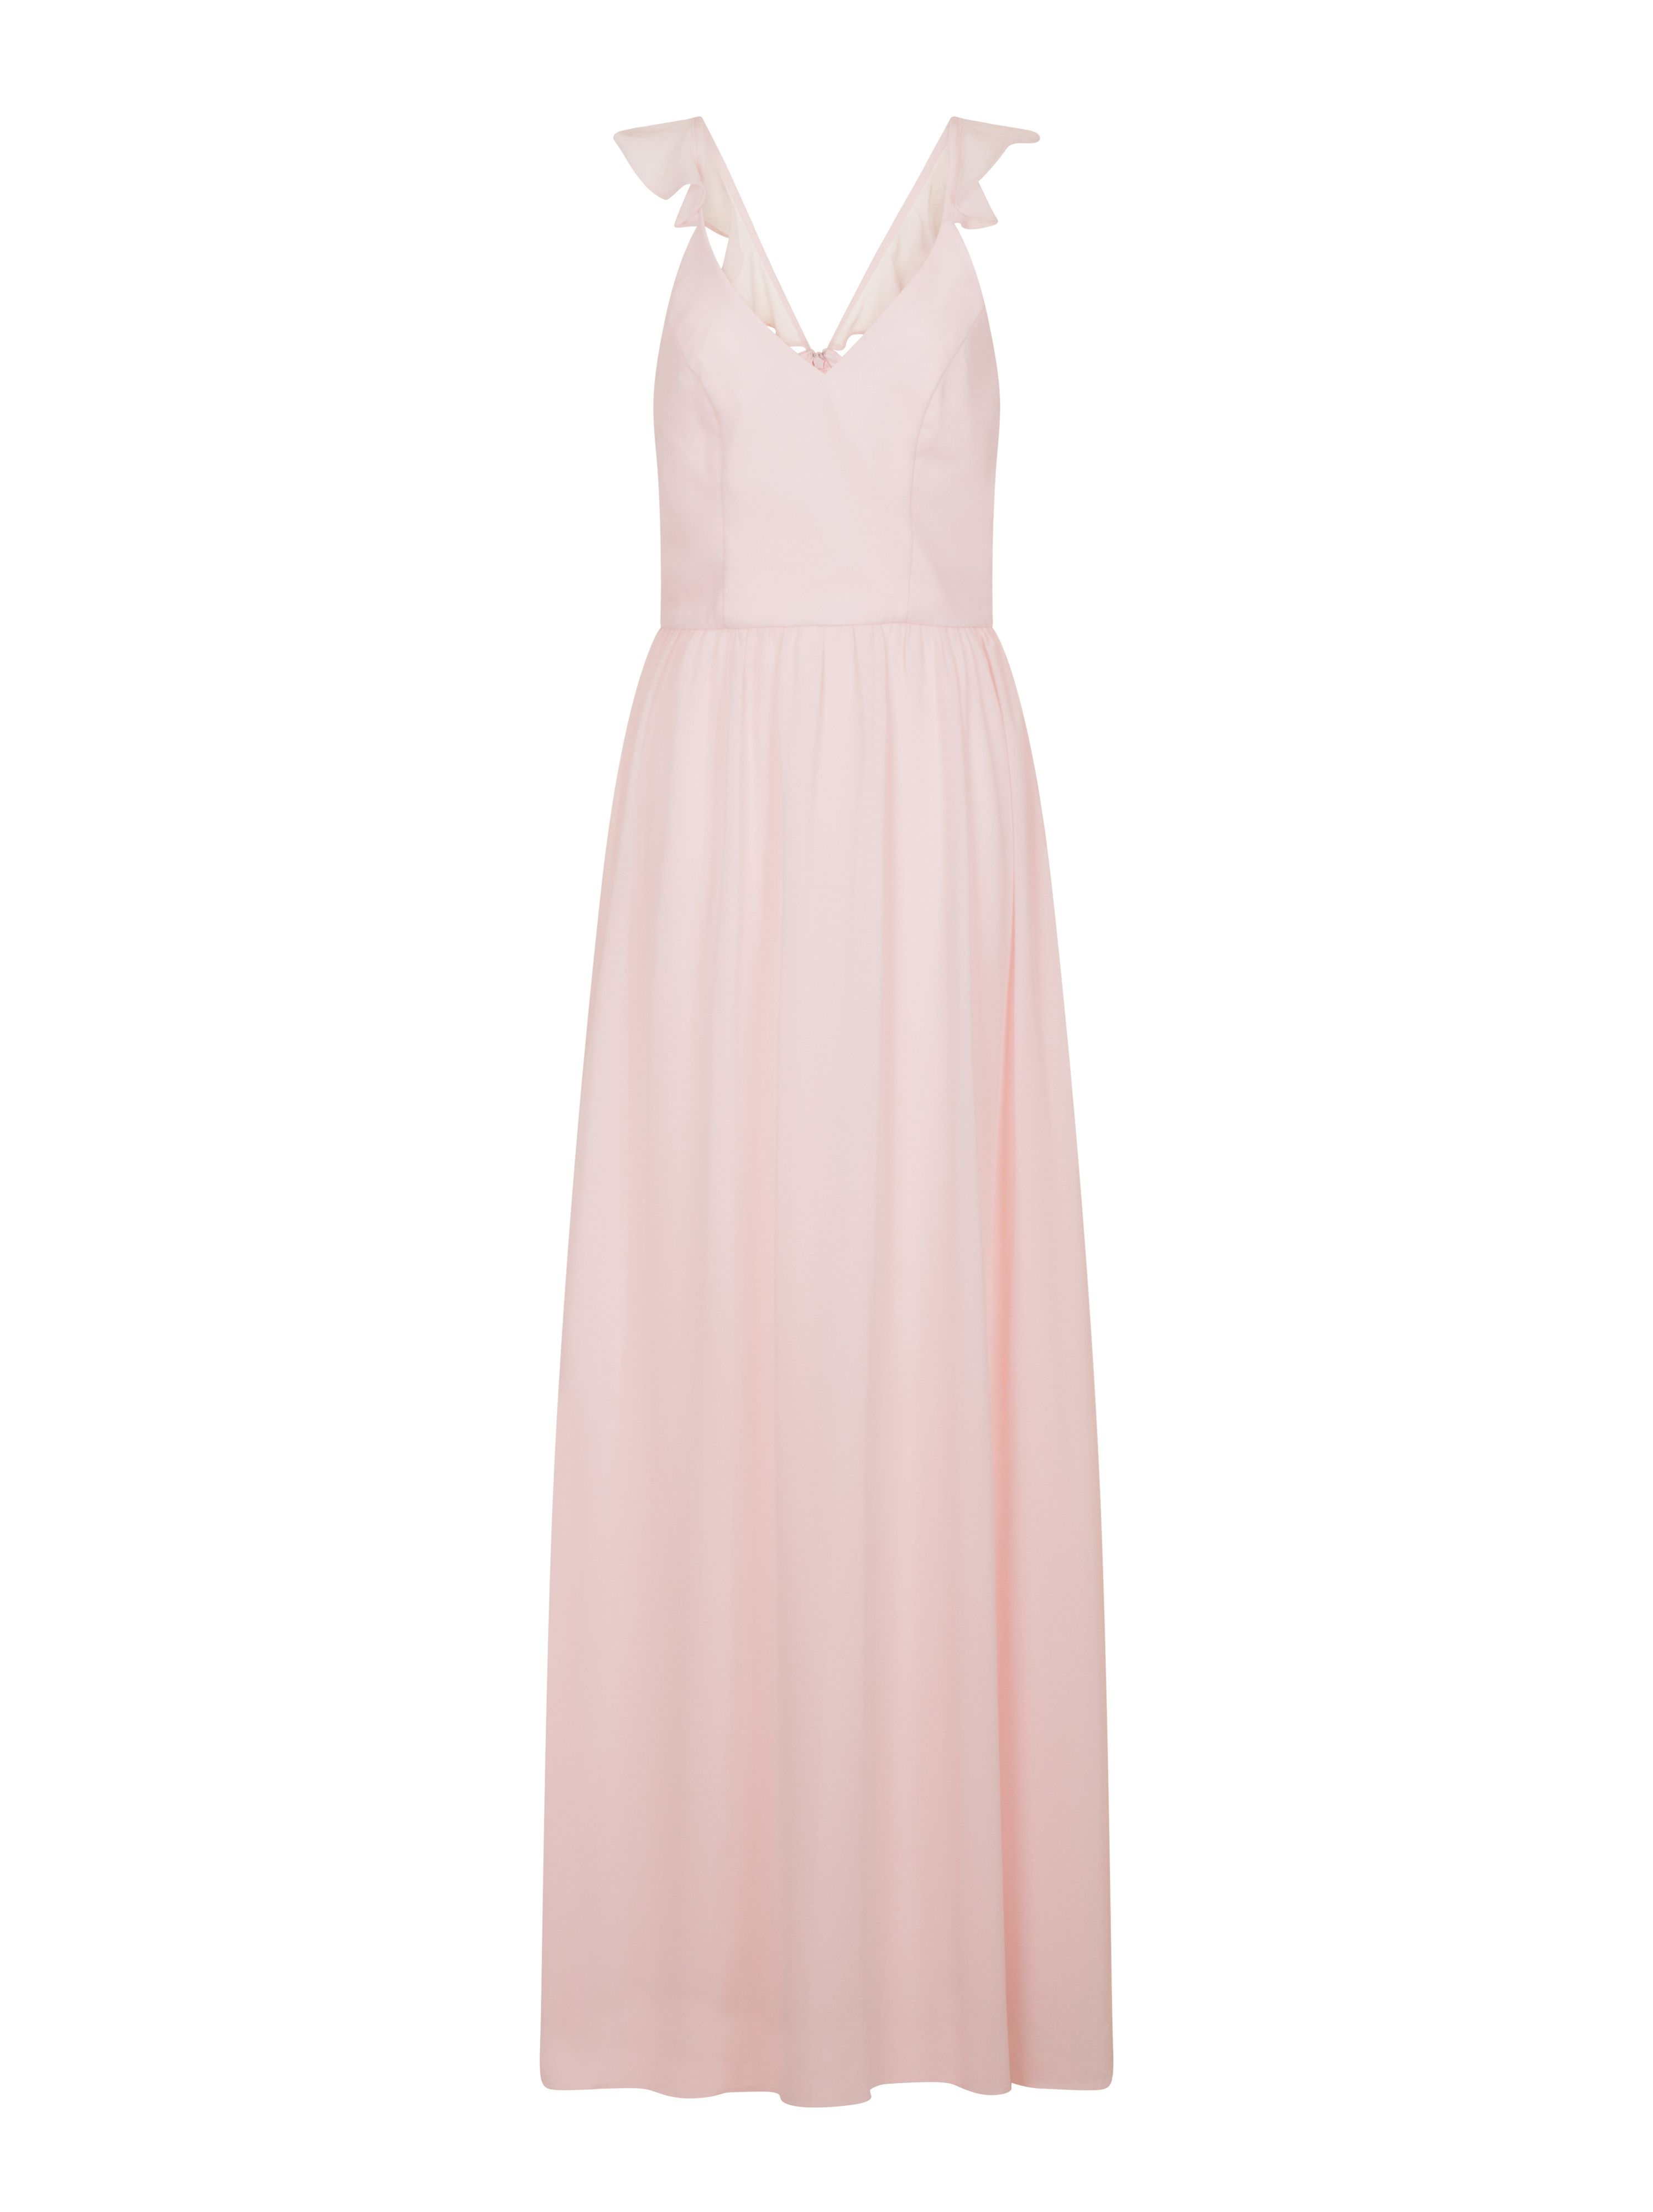 Chi Chi London Ruffle Strap Maxi Dress, Pink